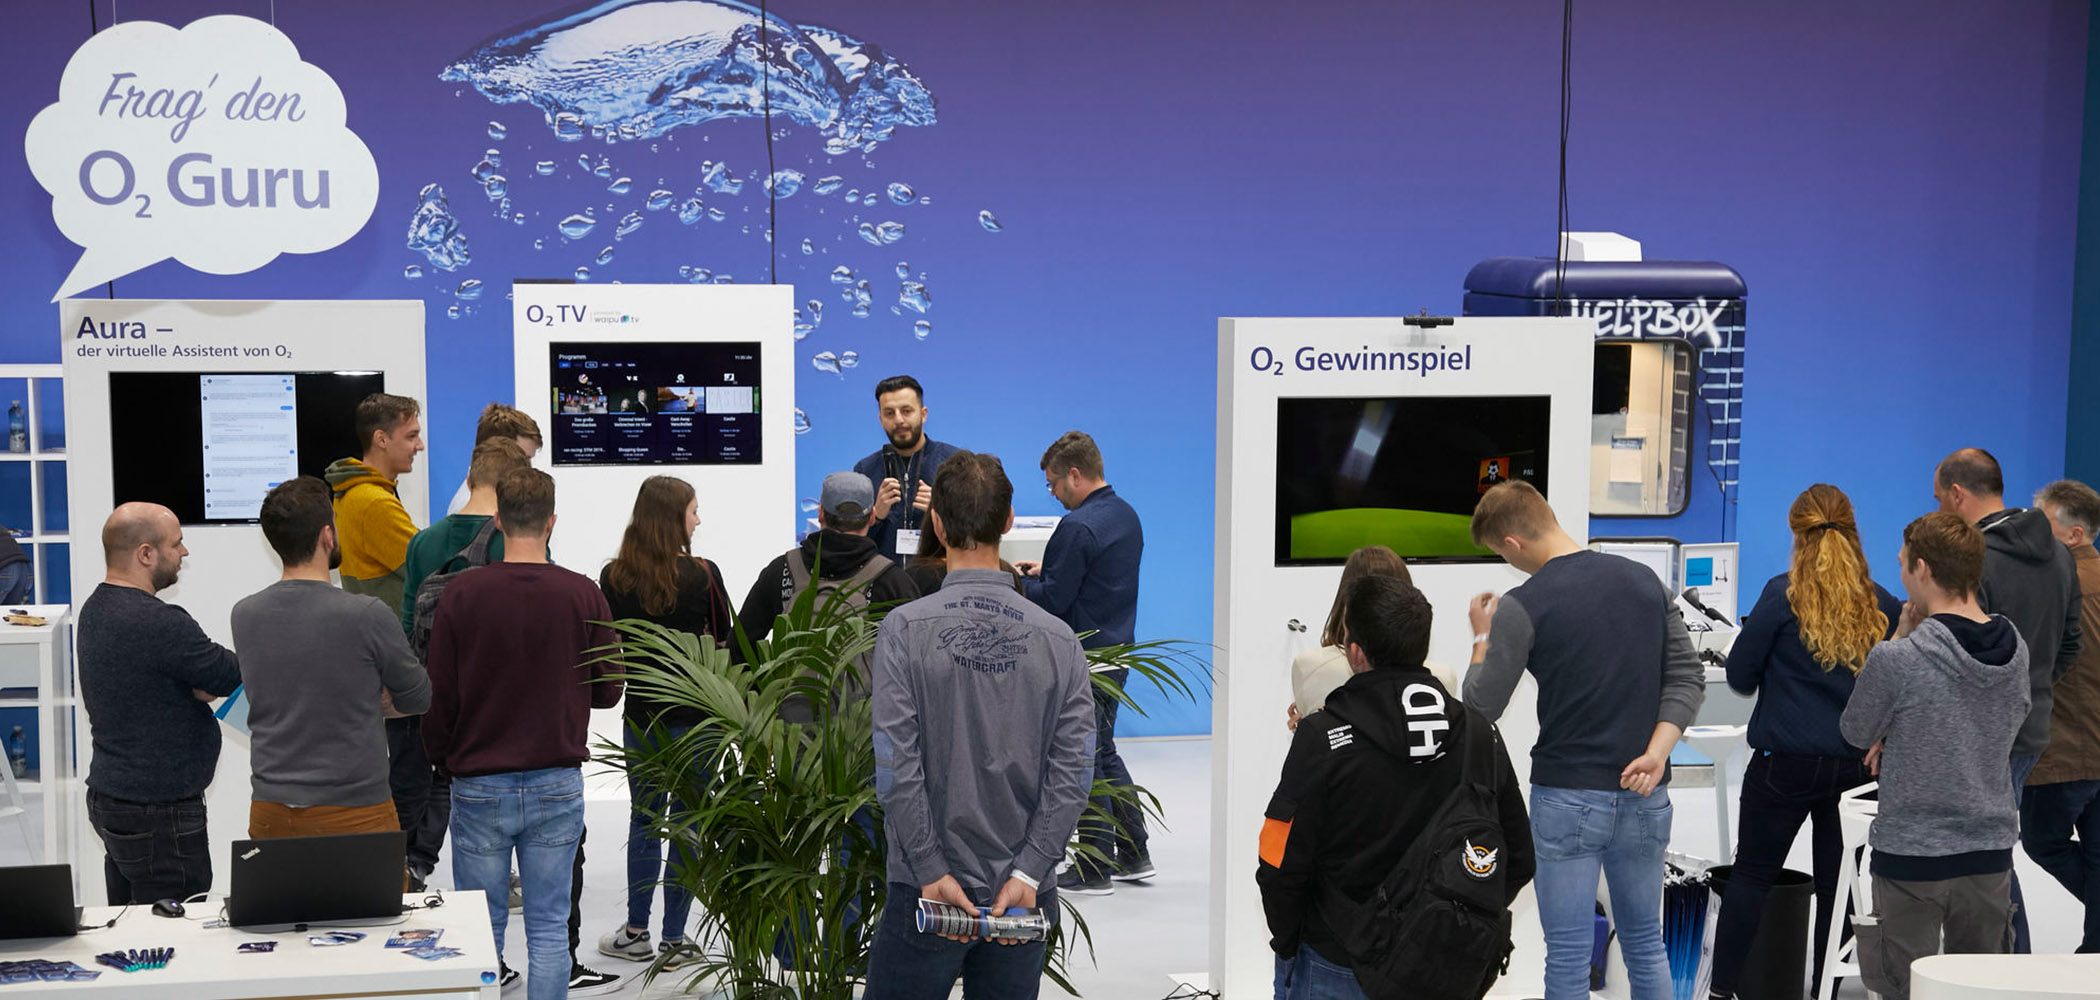 News vom 05.05.2019: connect Messe Dresden Telefónica